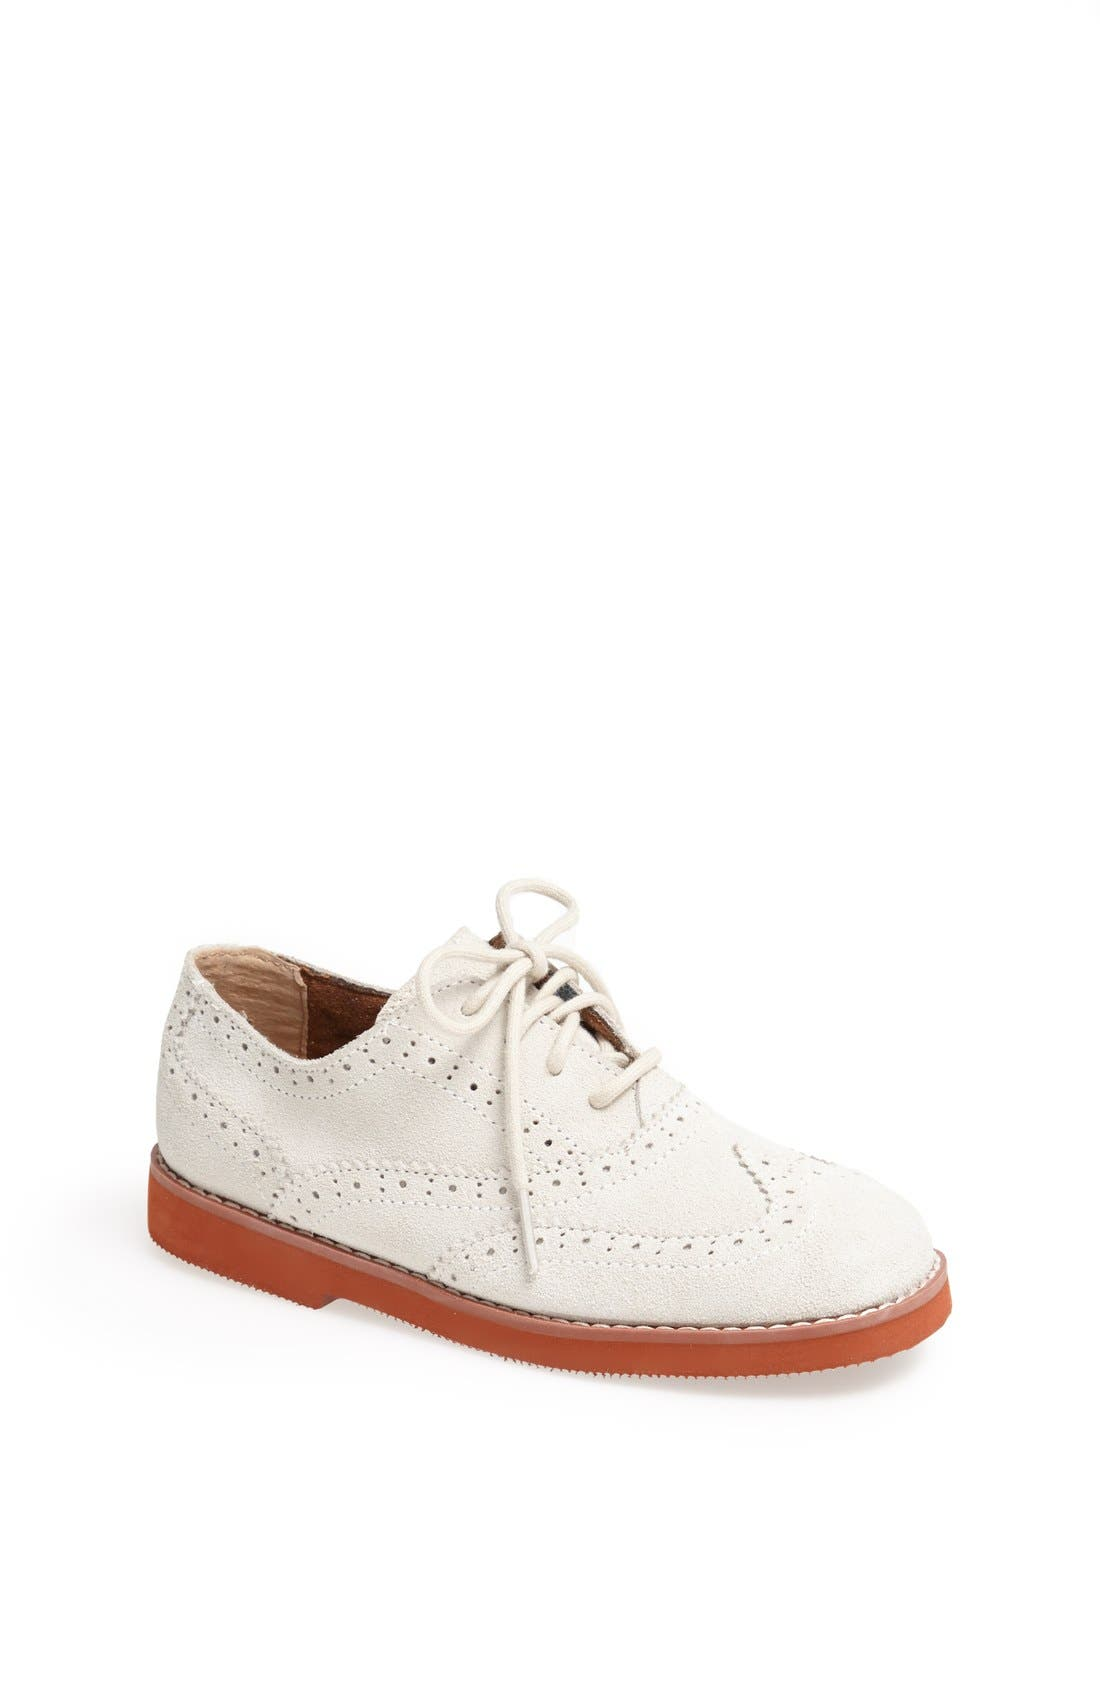 Florsheim 'No String' Wingtip Oxford (Toddler, Little Kid & Big Kid)